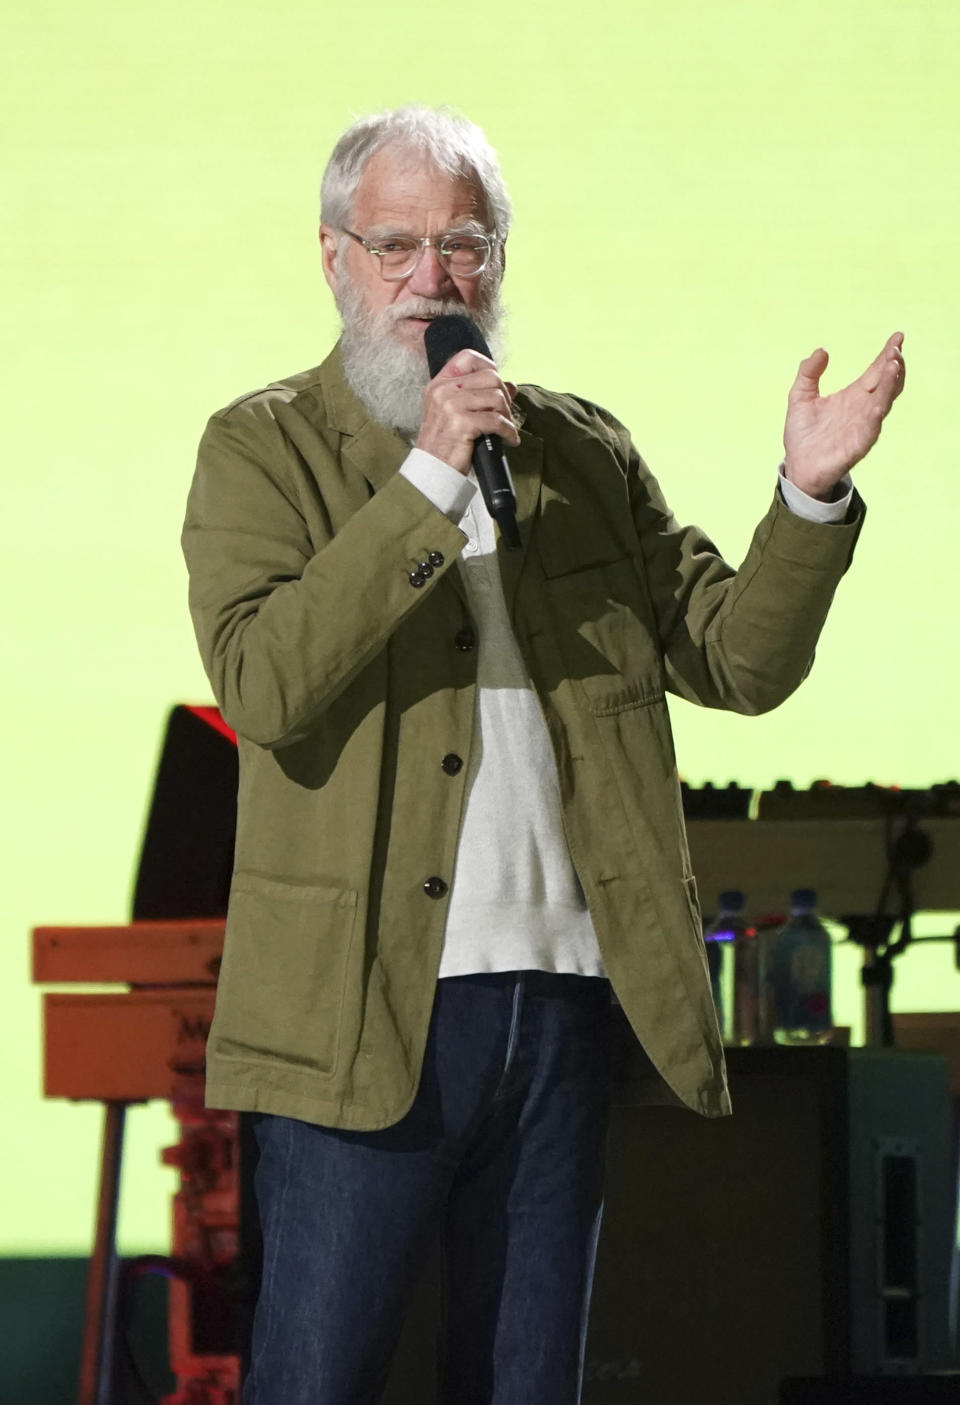 """David Letterman speaks at """"Vax Live: The Concert to Reunite the World"""" on Sunday, May 2, 2021, at SoFi Stadium in Inglewood, Calif. (Photo by Jordan Strauss/Invision/AP)"""